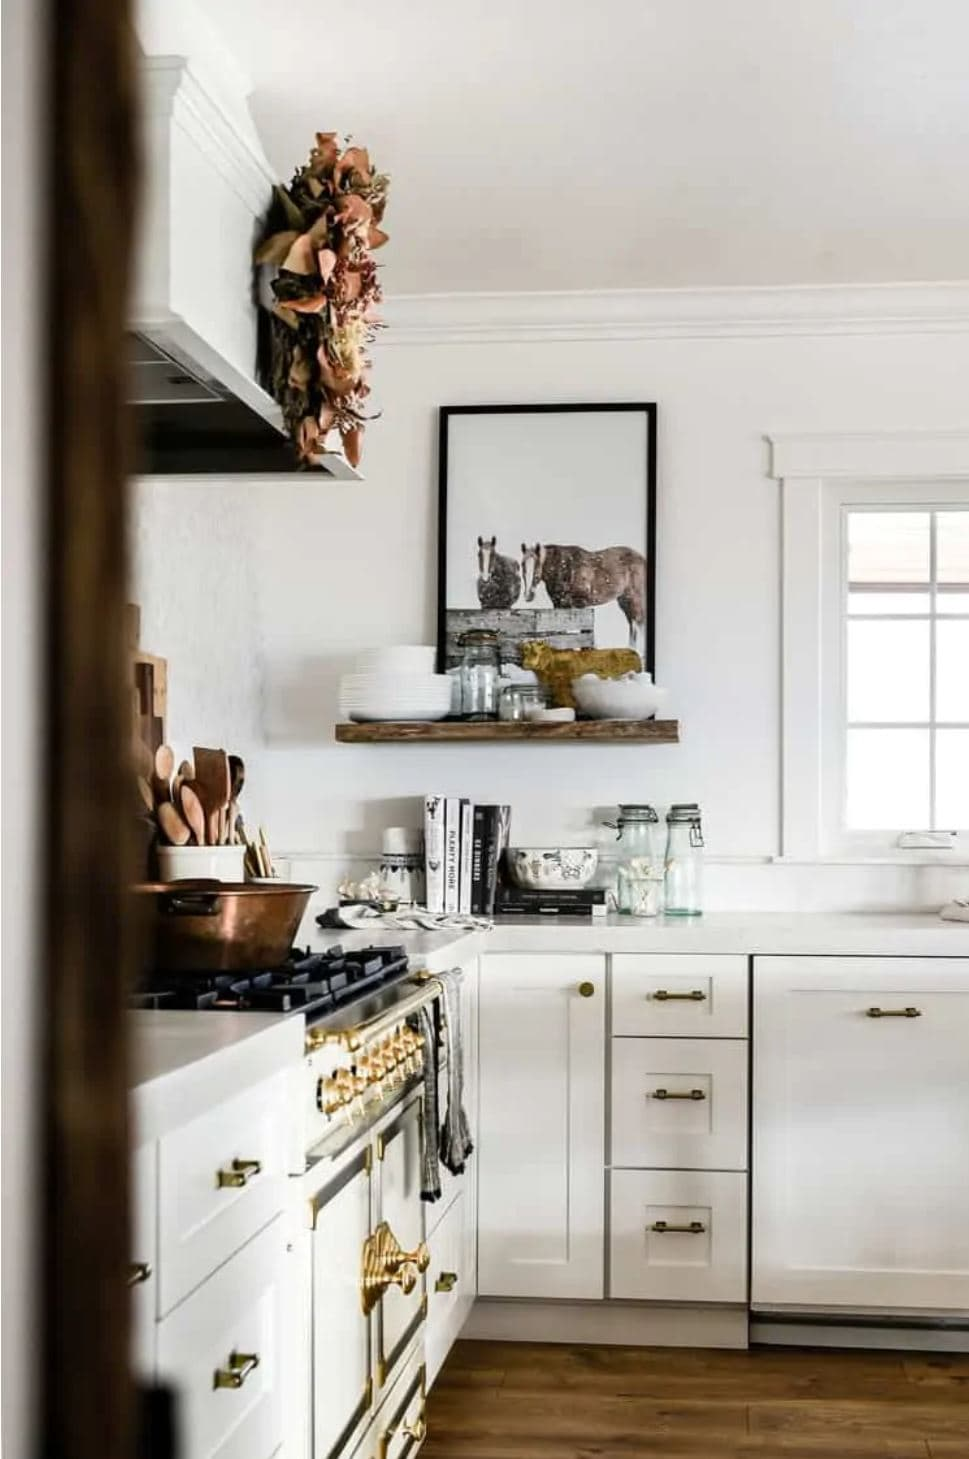 A farmhouse kitchen with a French range and white shaker cabinets.